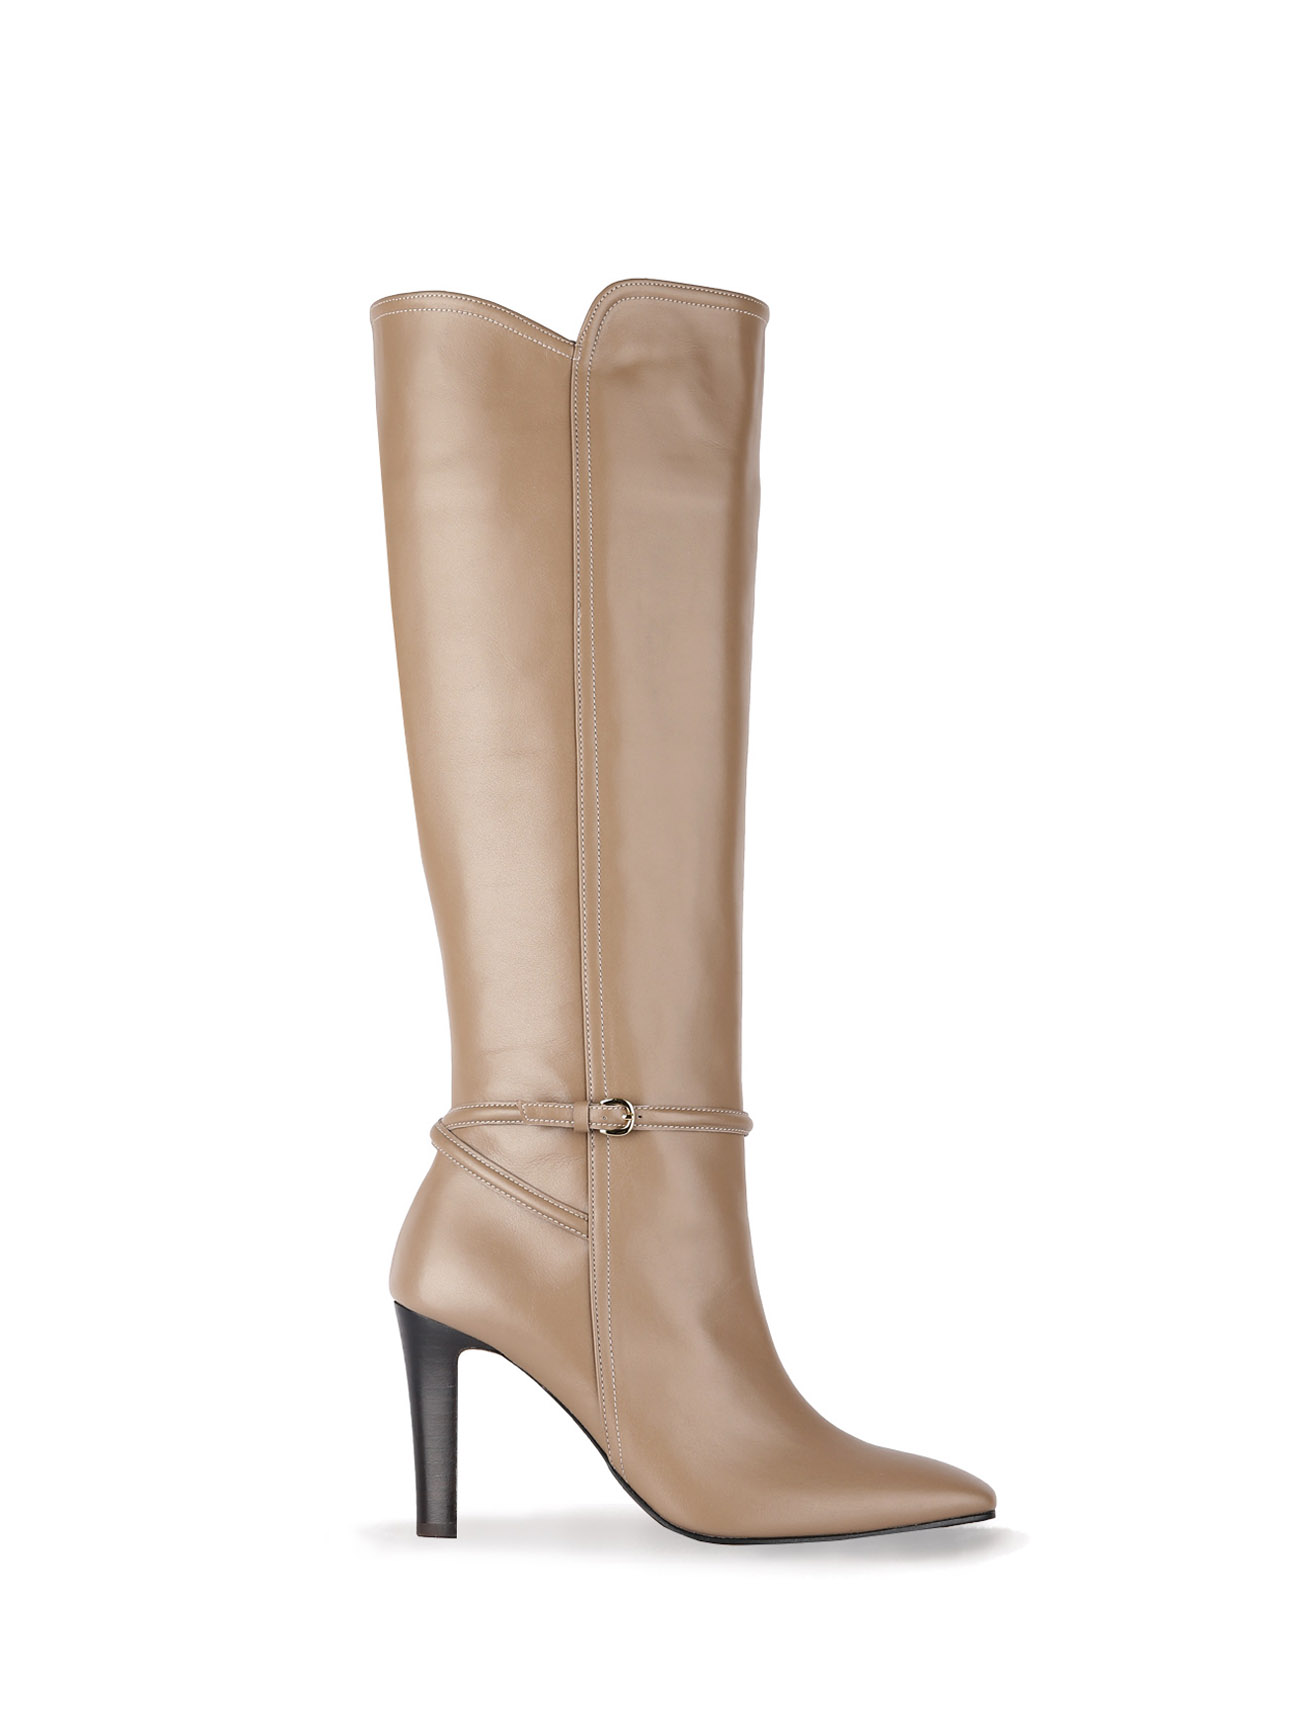 KELLY KNEE-HIGH LEATHER BOOTS (7cm, 9cm) - PEWTER BROWN